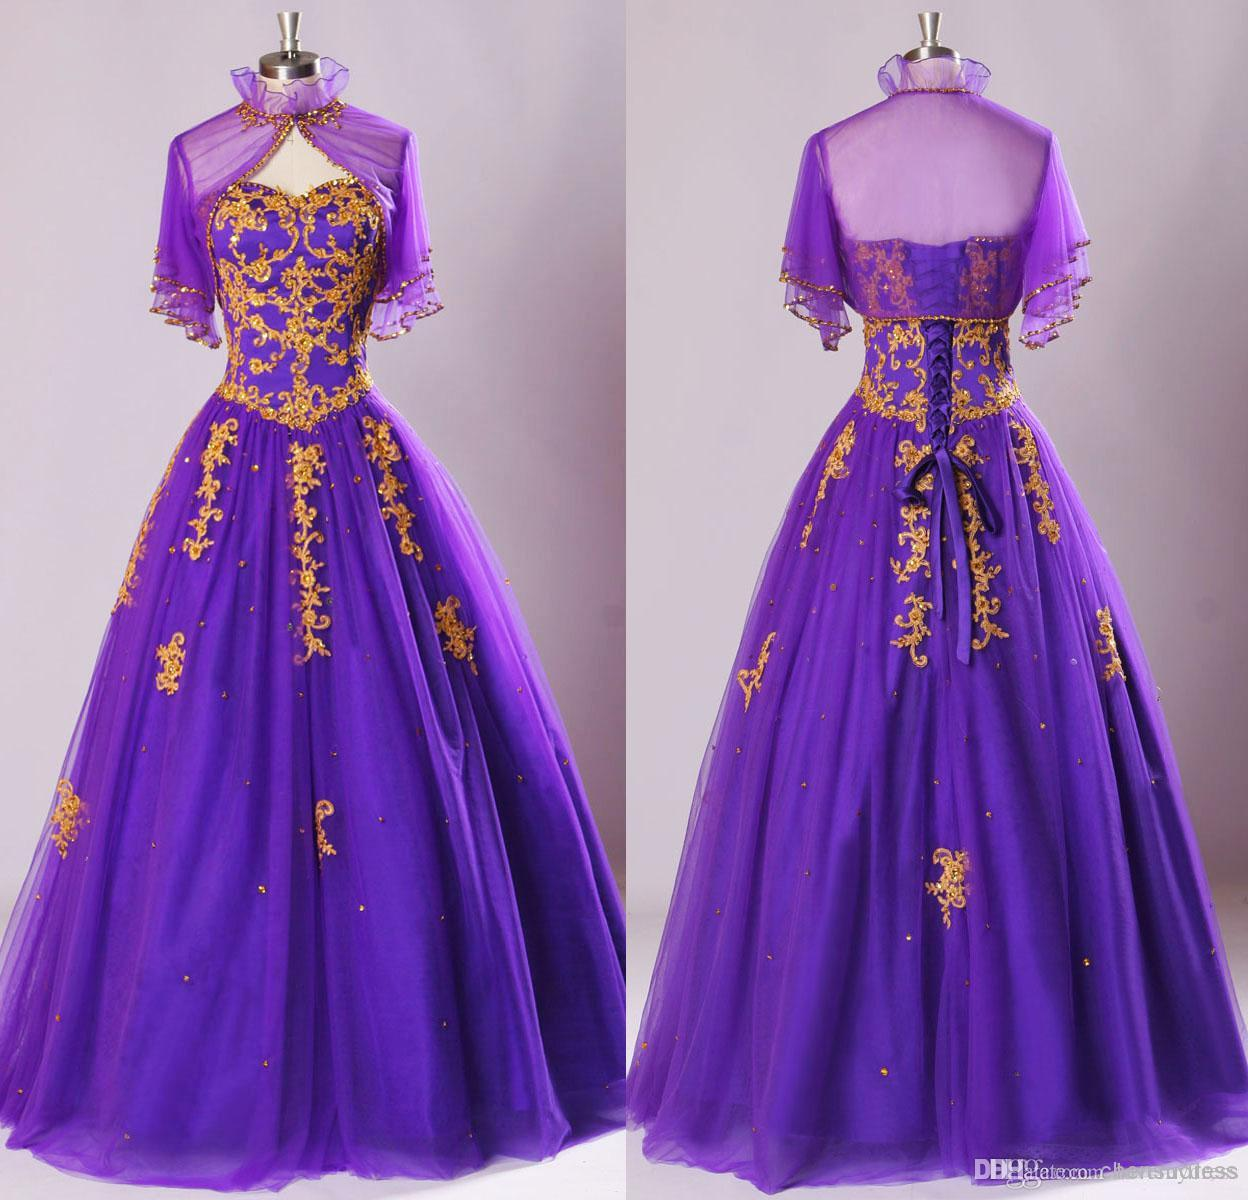 ecd6c2a57272 Purple And Gold Embroidery Quinceanera Dresses Ball Gowns With Sequined  Beaded Tulle Corset Back Cheap Prom Evening Dress Gowns Custom Cheap White  Dresses ...